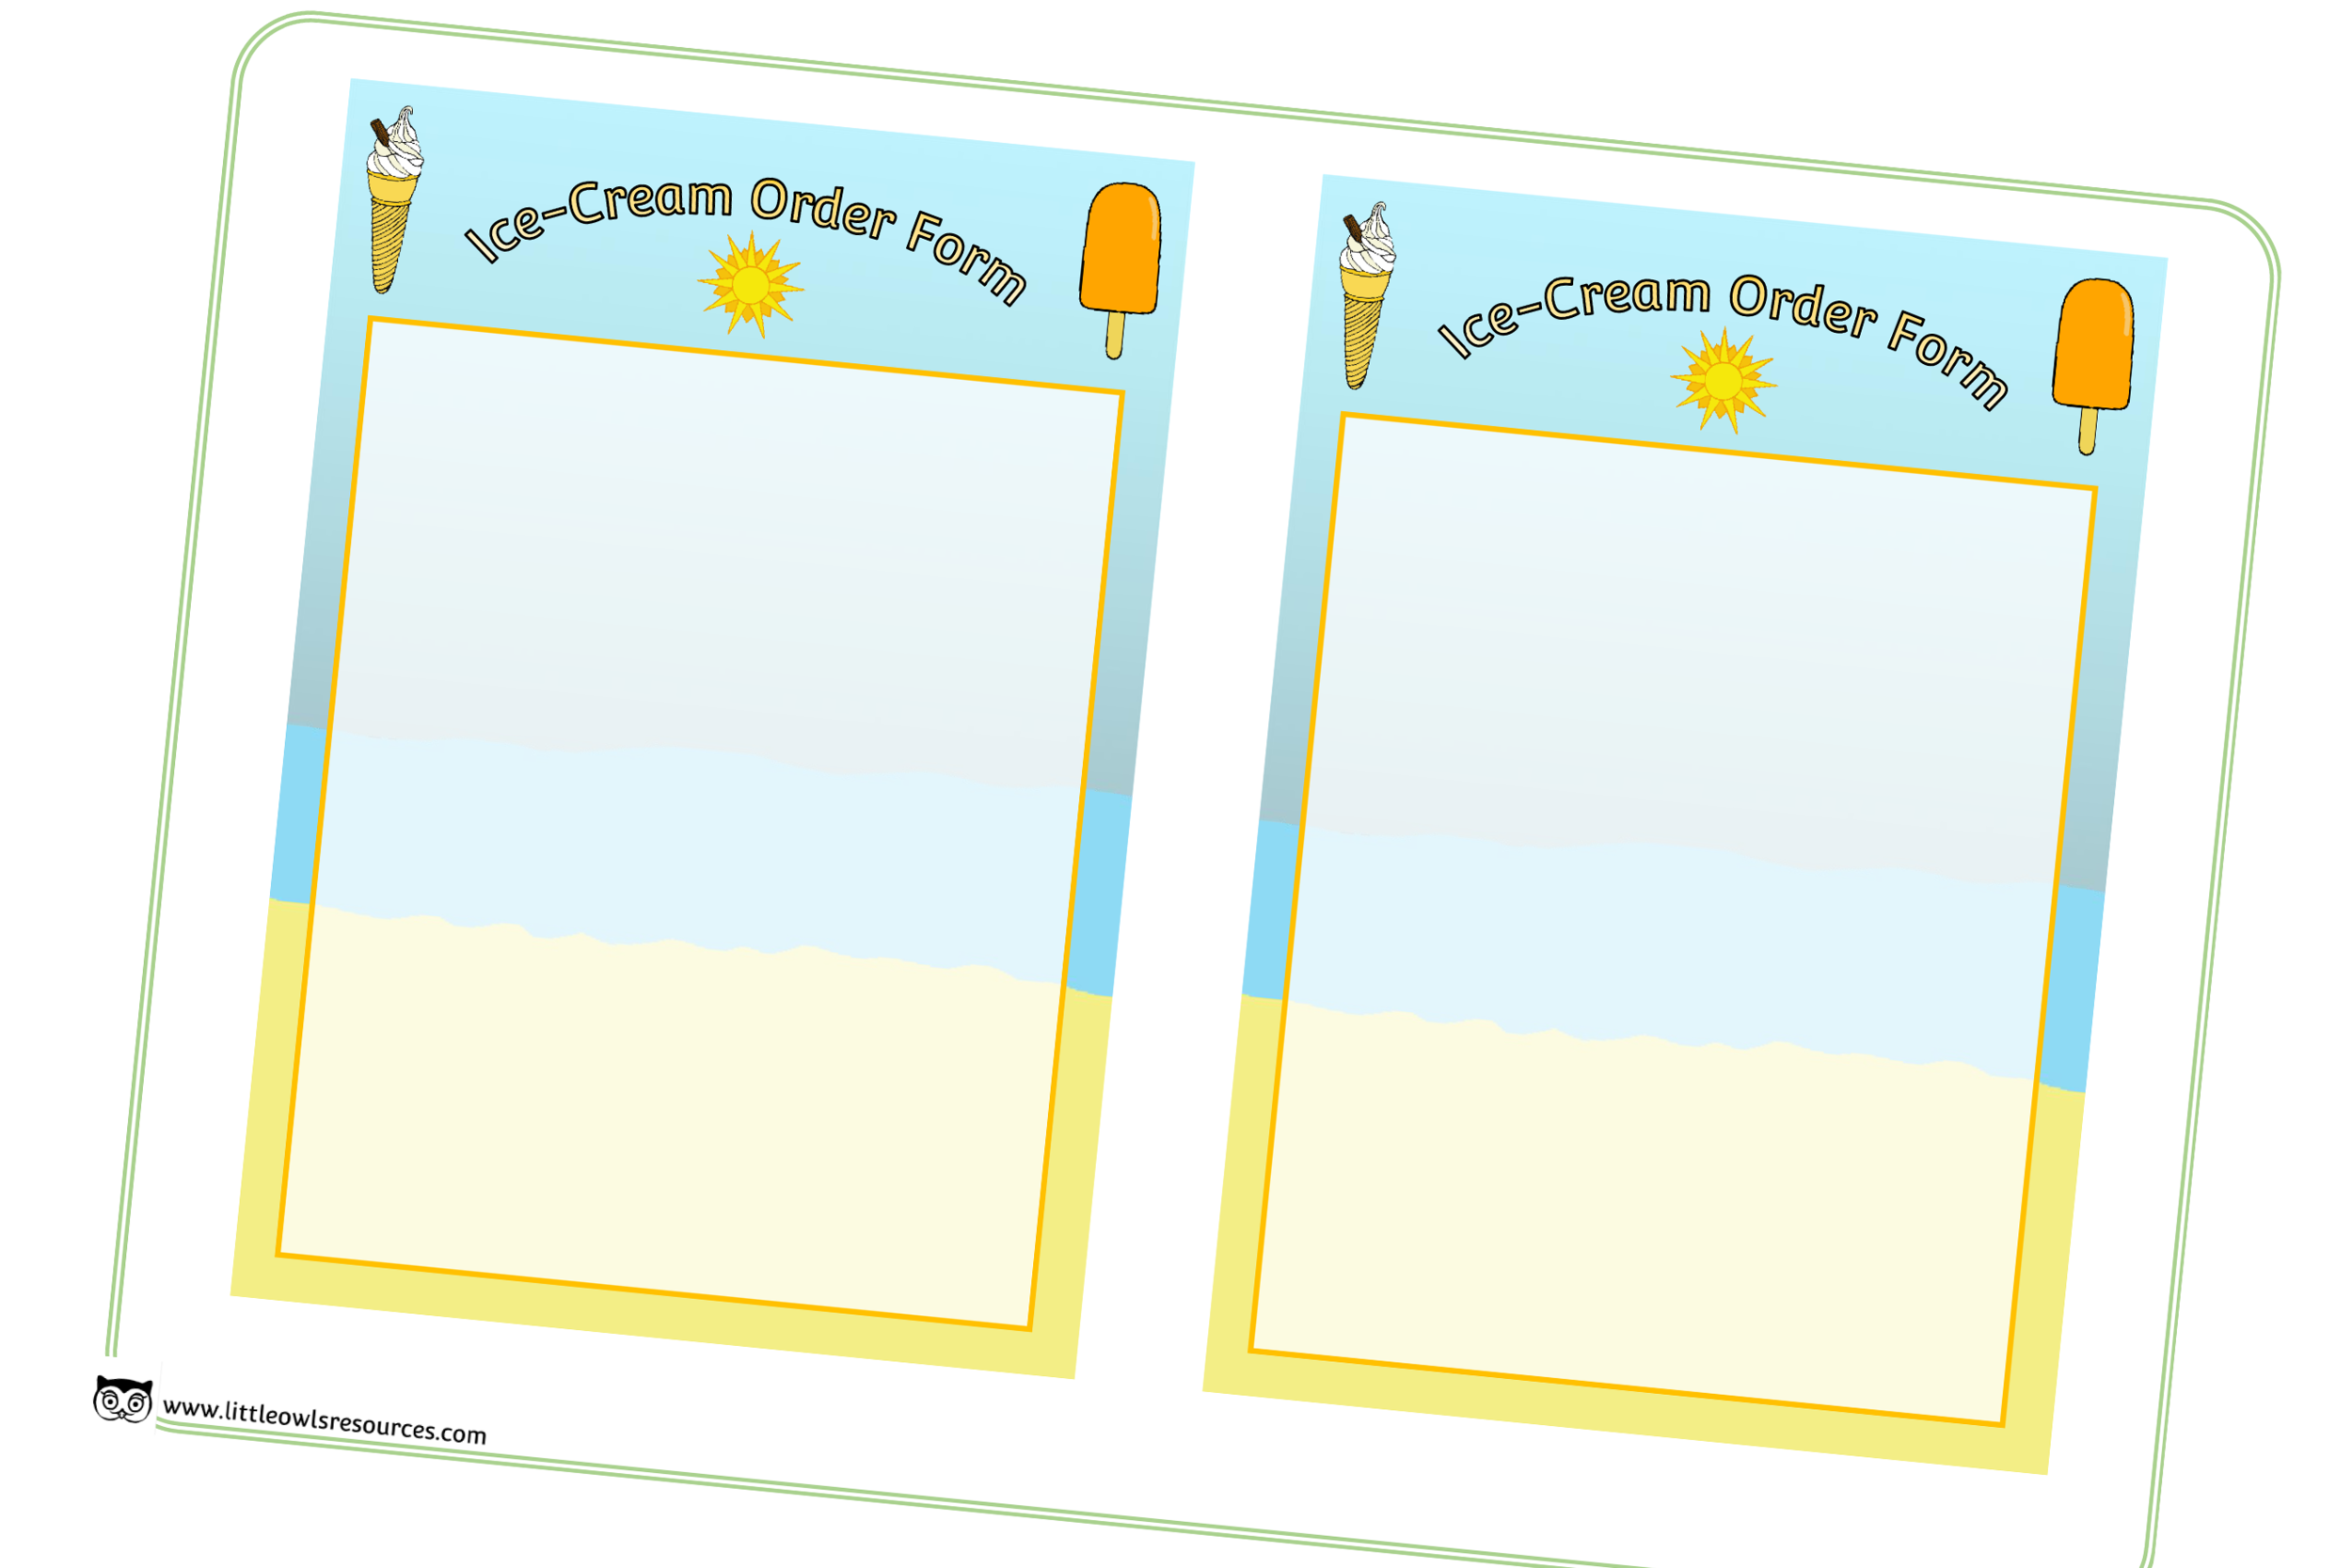 Ice Cream Order Forms